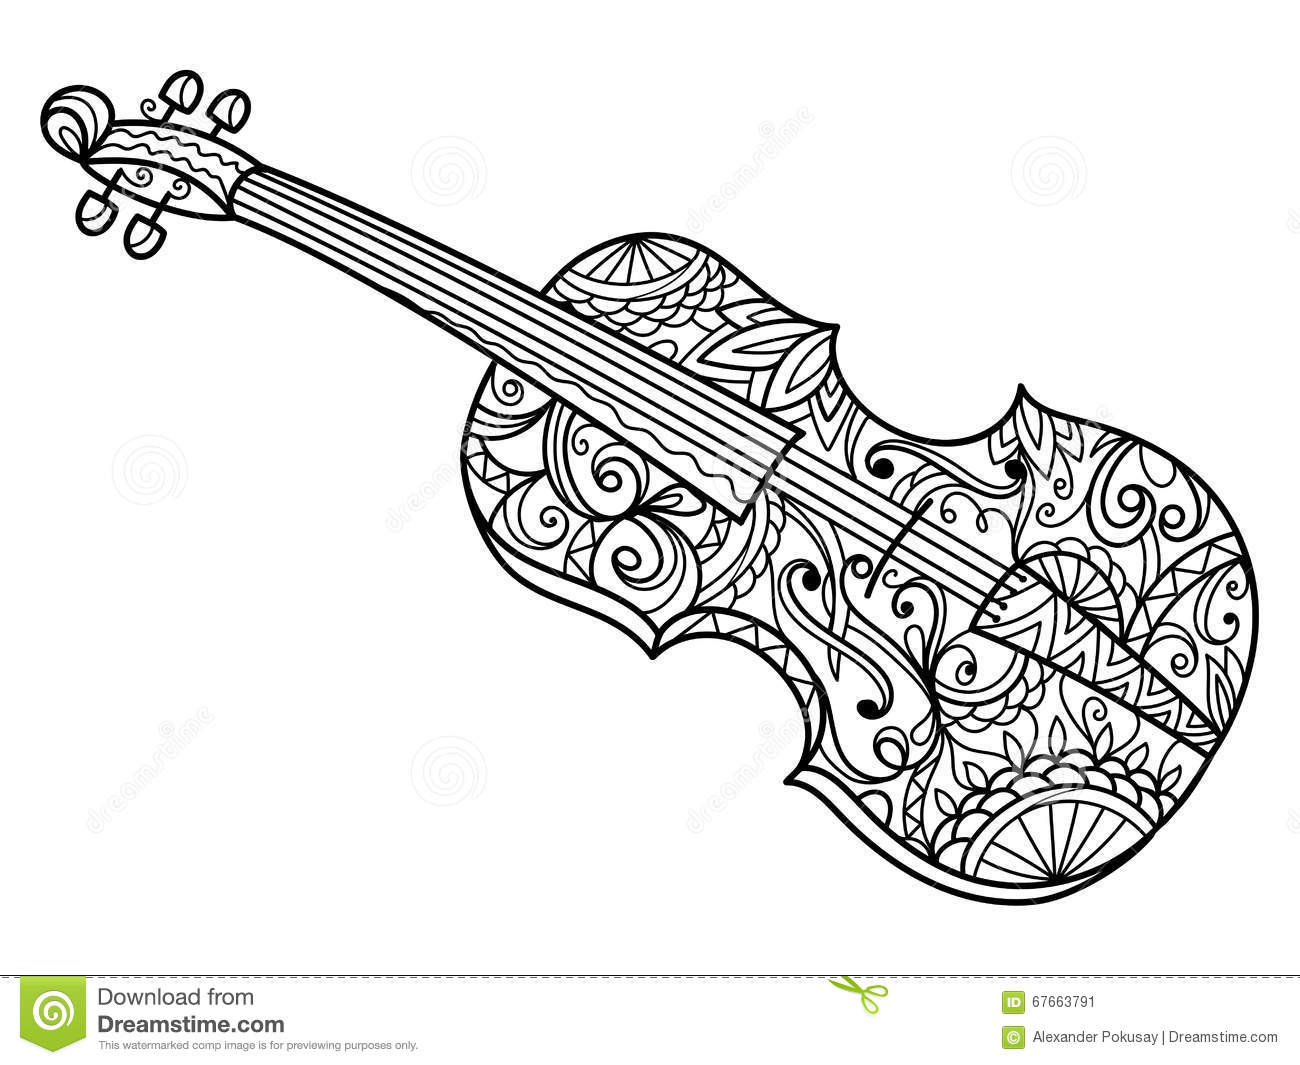 Cello Coloring Page - Erieairfair